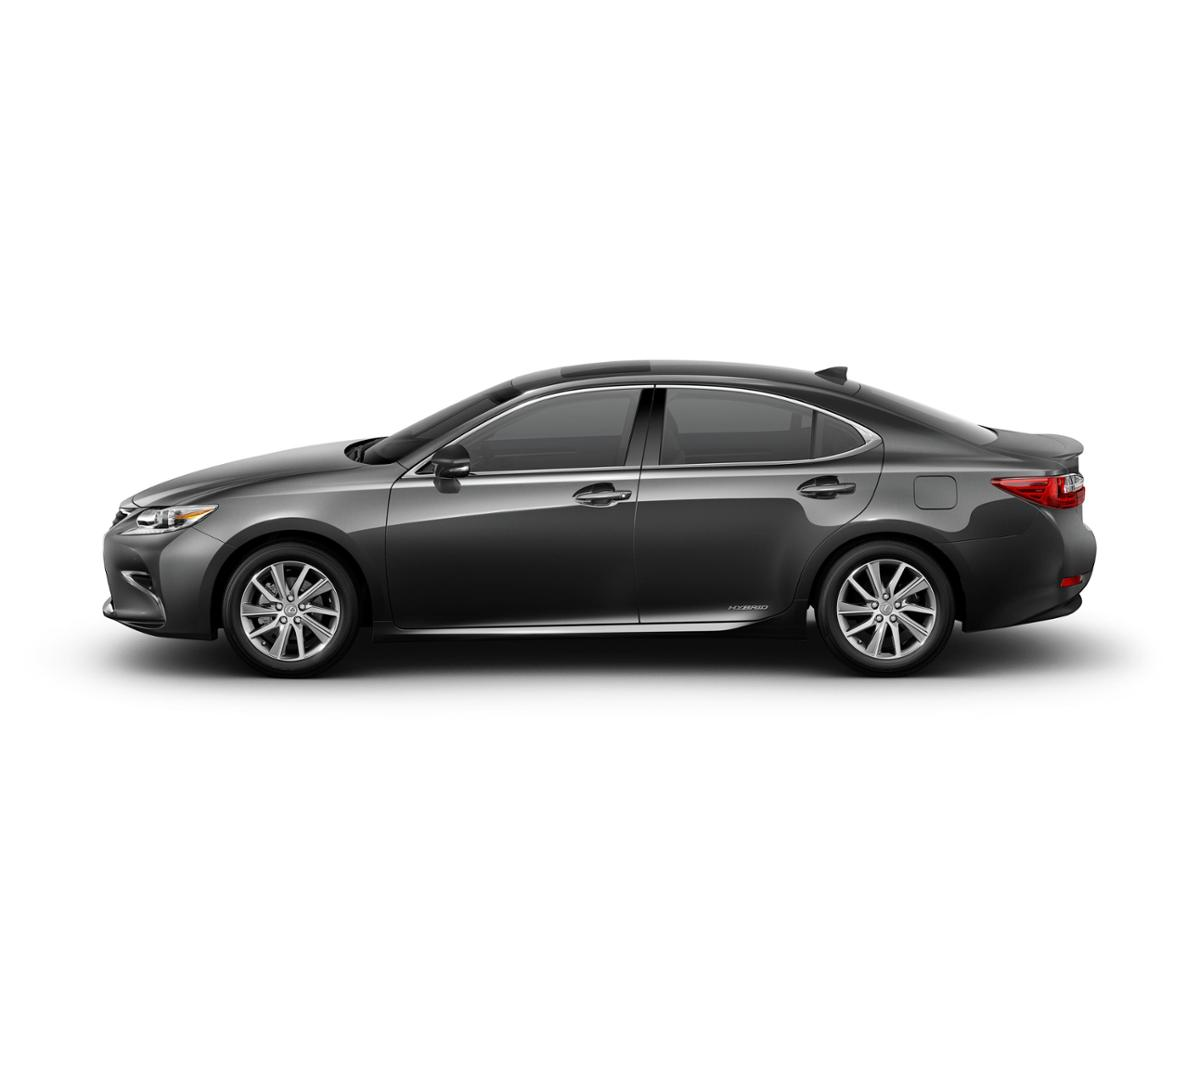 2017 Lexus ES 300h Vehicle Photo in Appleton, WI 54913